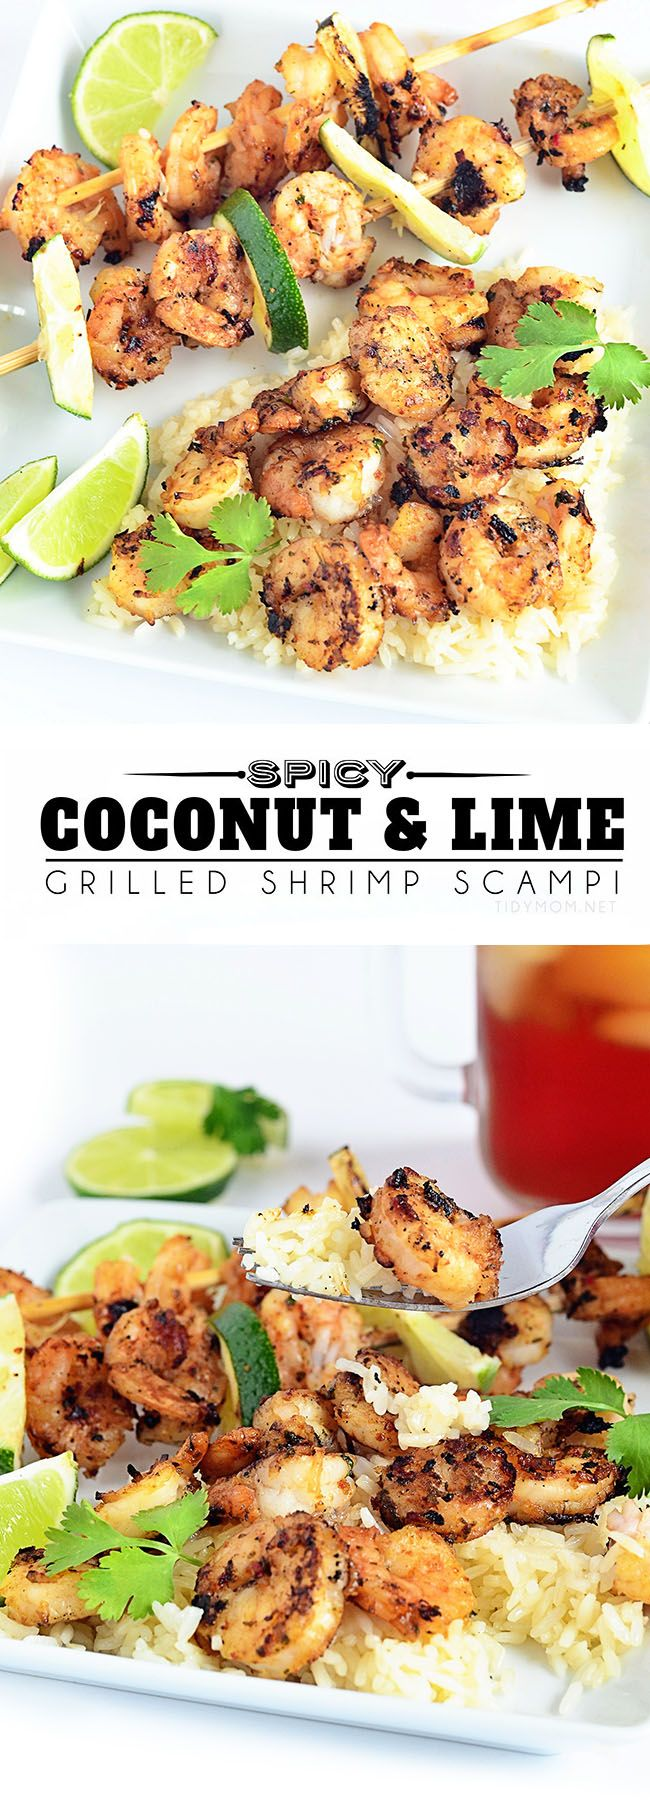 Spicy Coconut & Lime Grilled Shrimp Scampi recipe